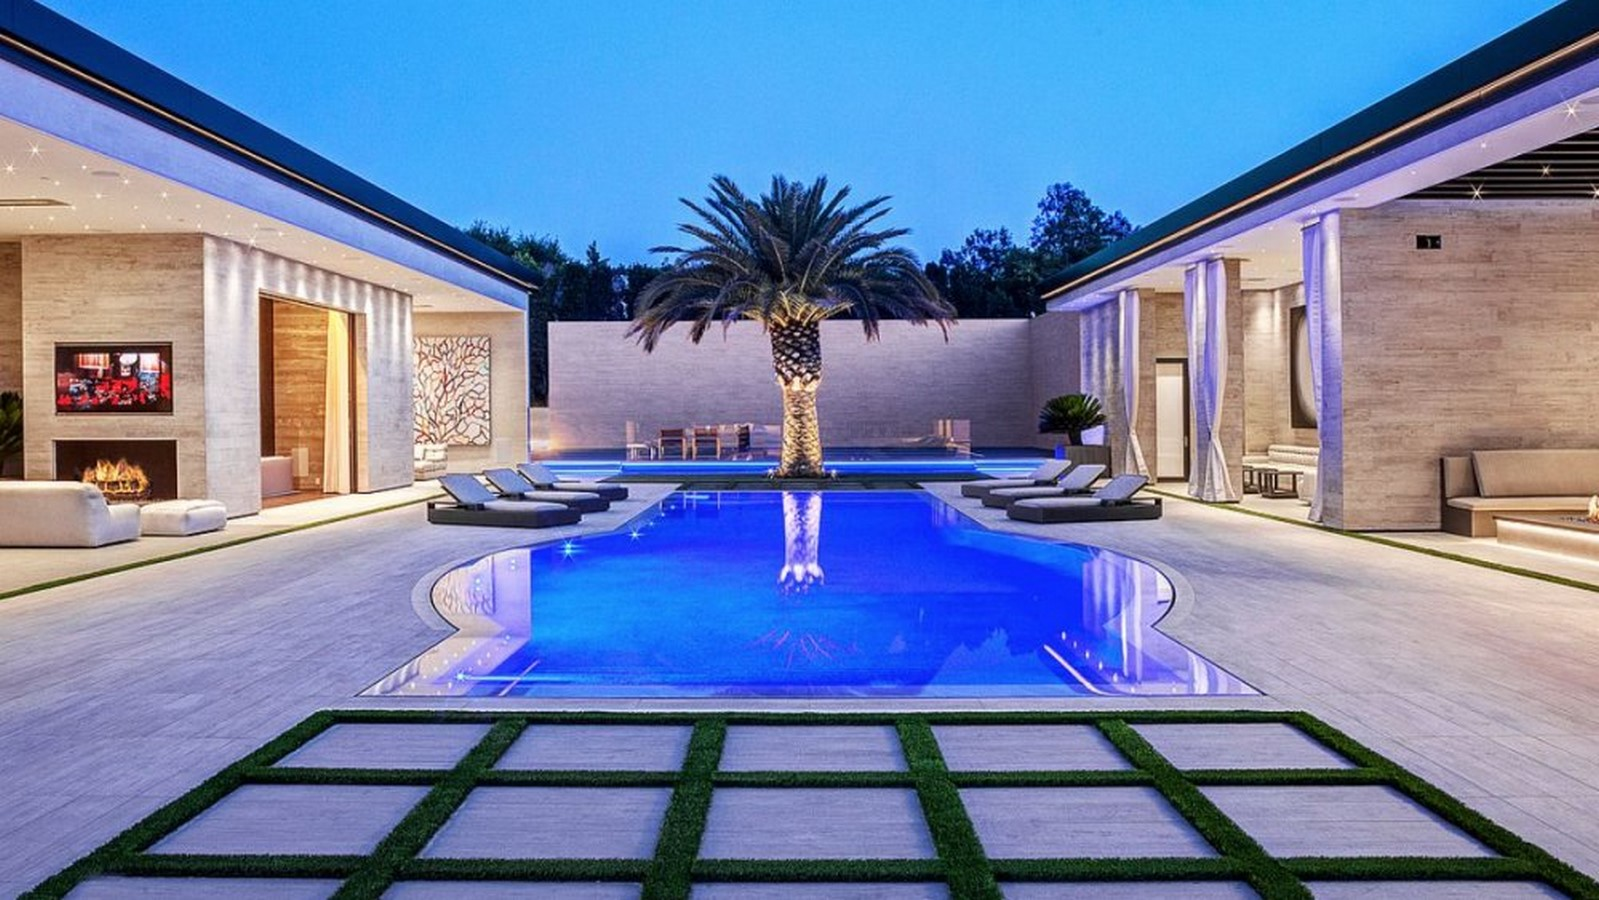 Kylie Jenner's House, Los Angeles, USA - Sheet2